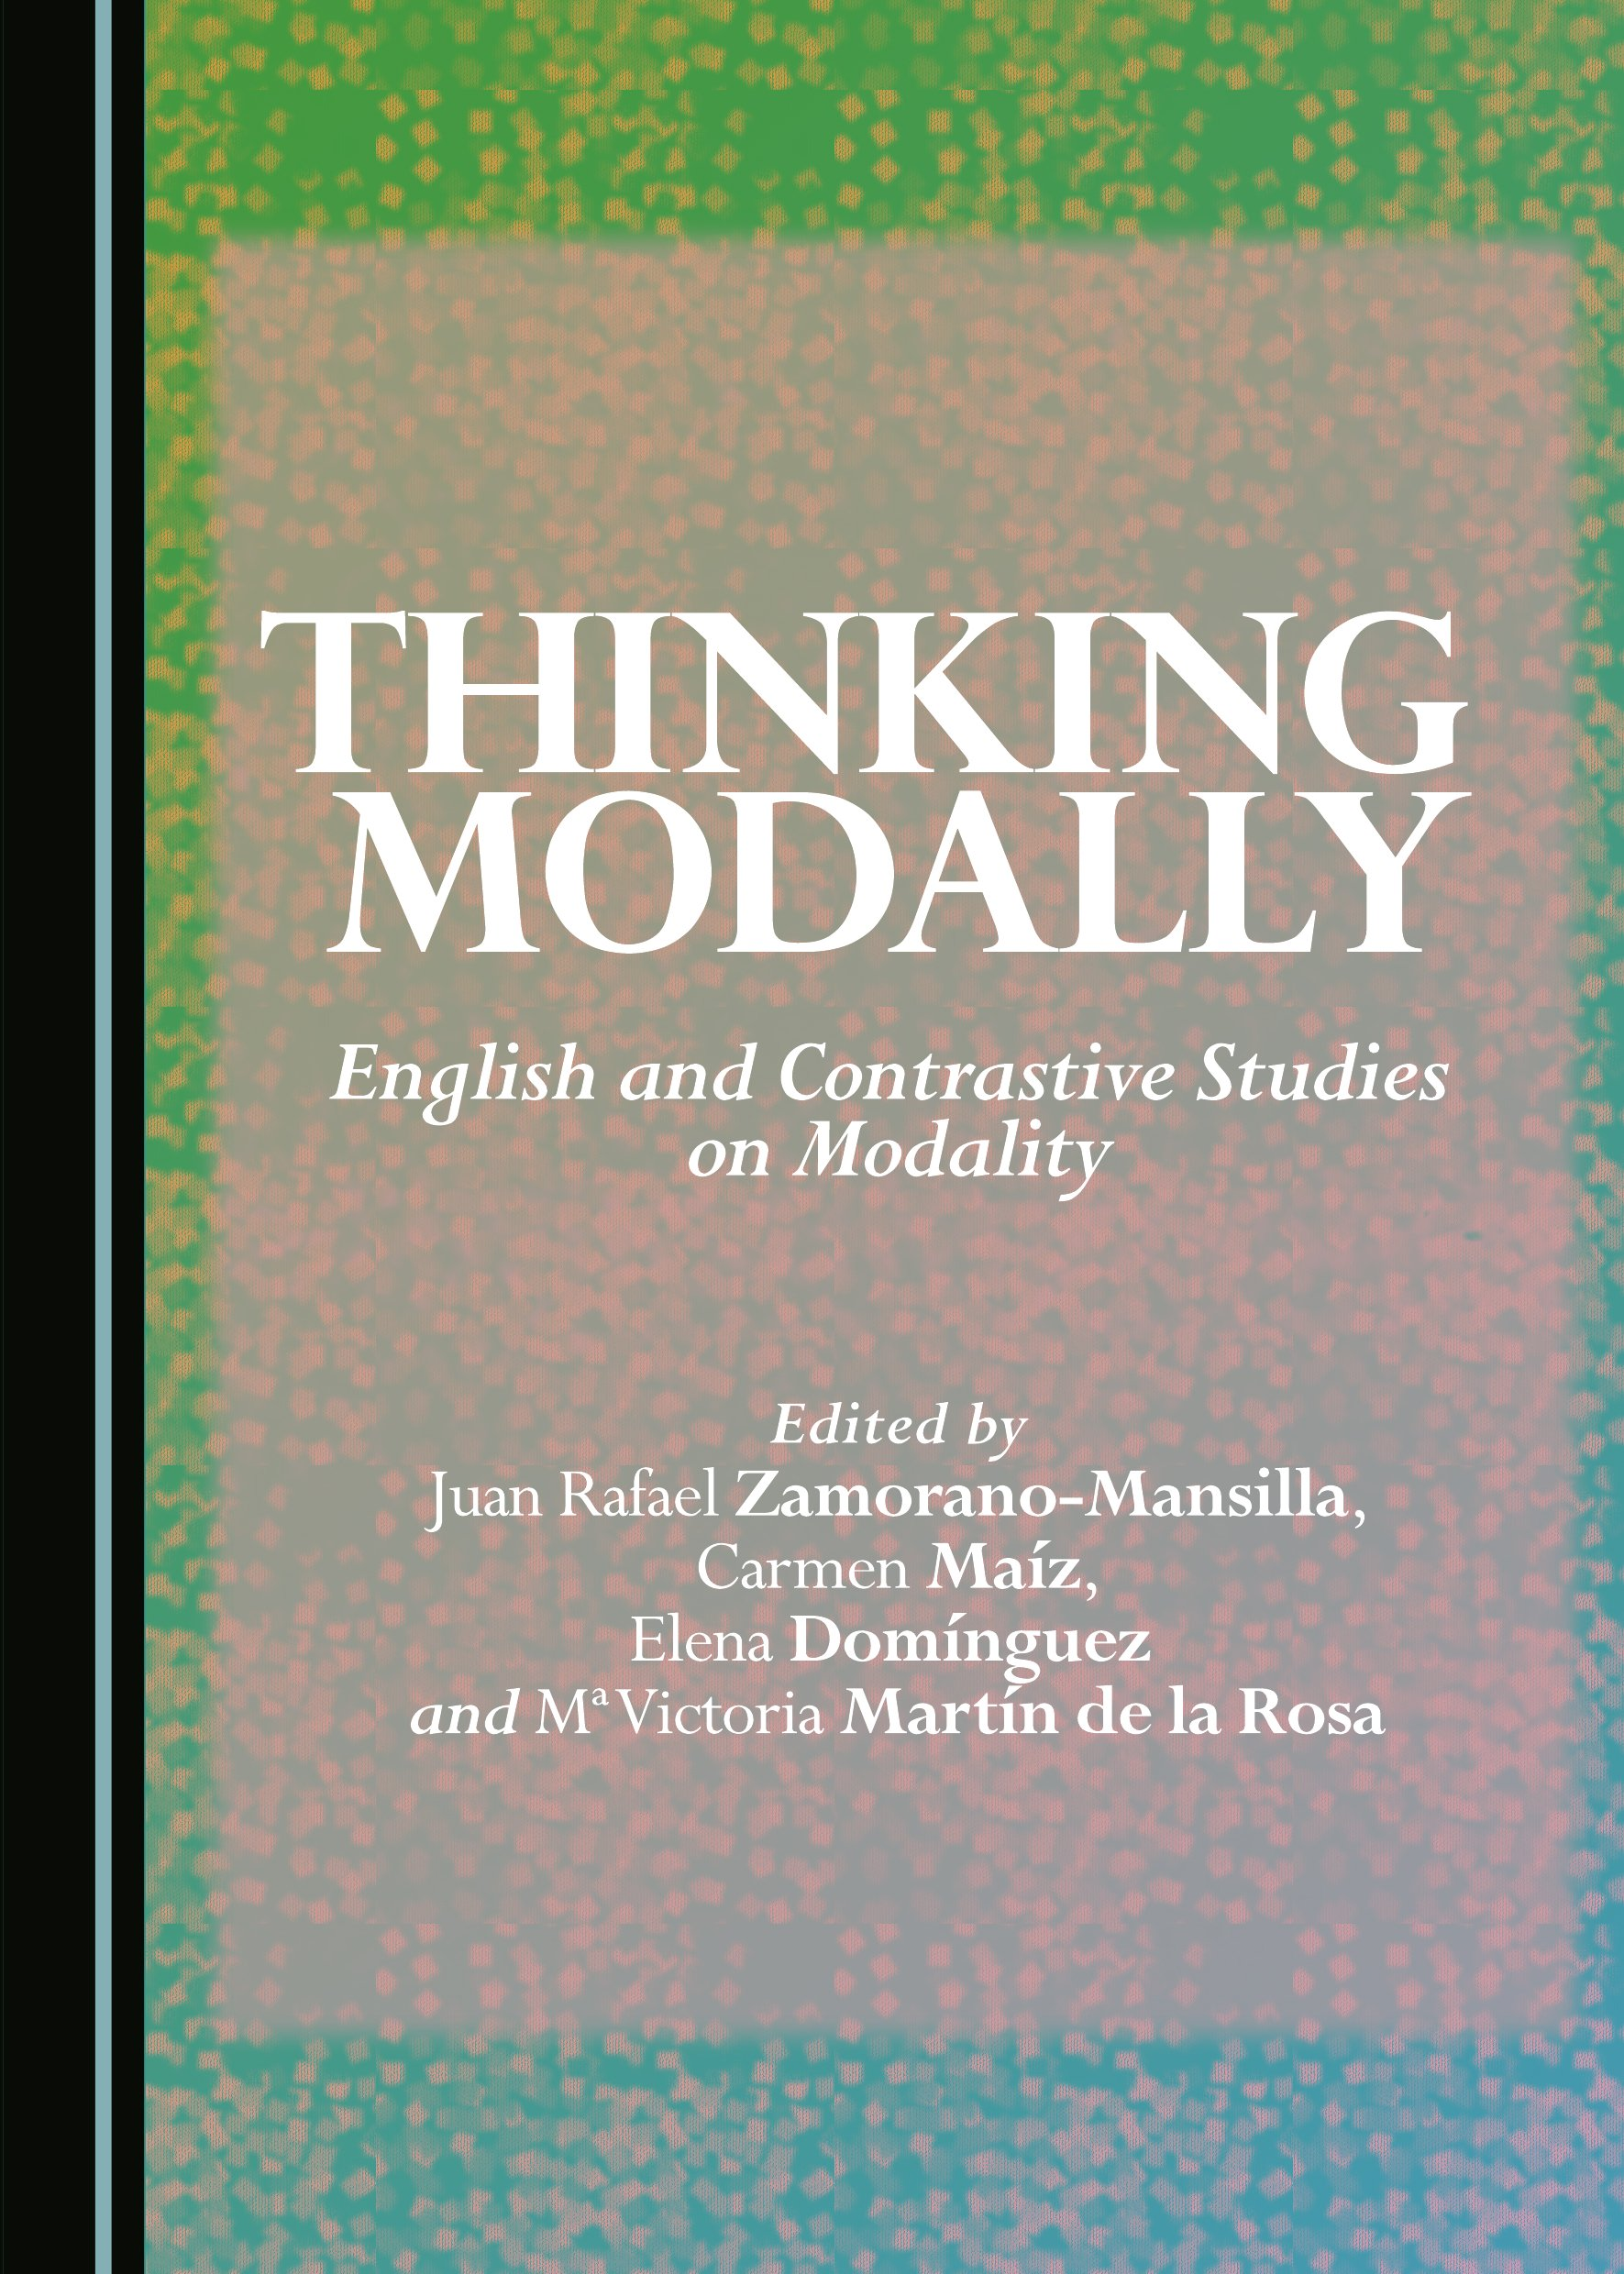 Thinking Modally: English and Contrastive Studies on Modality